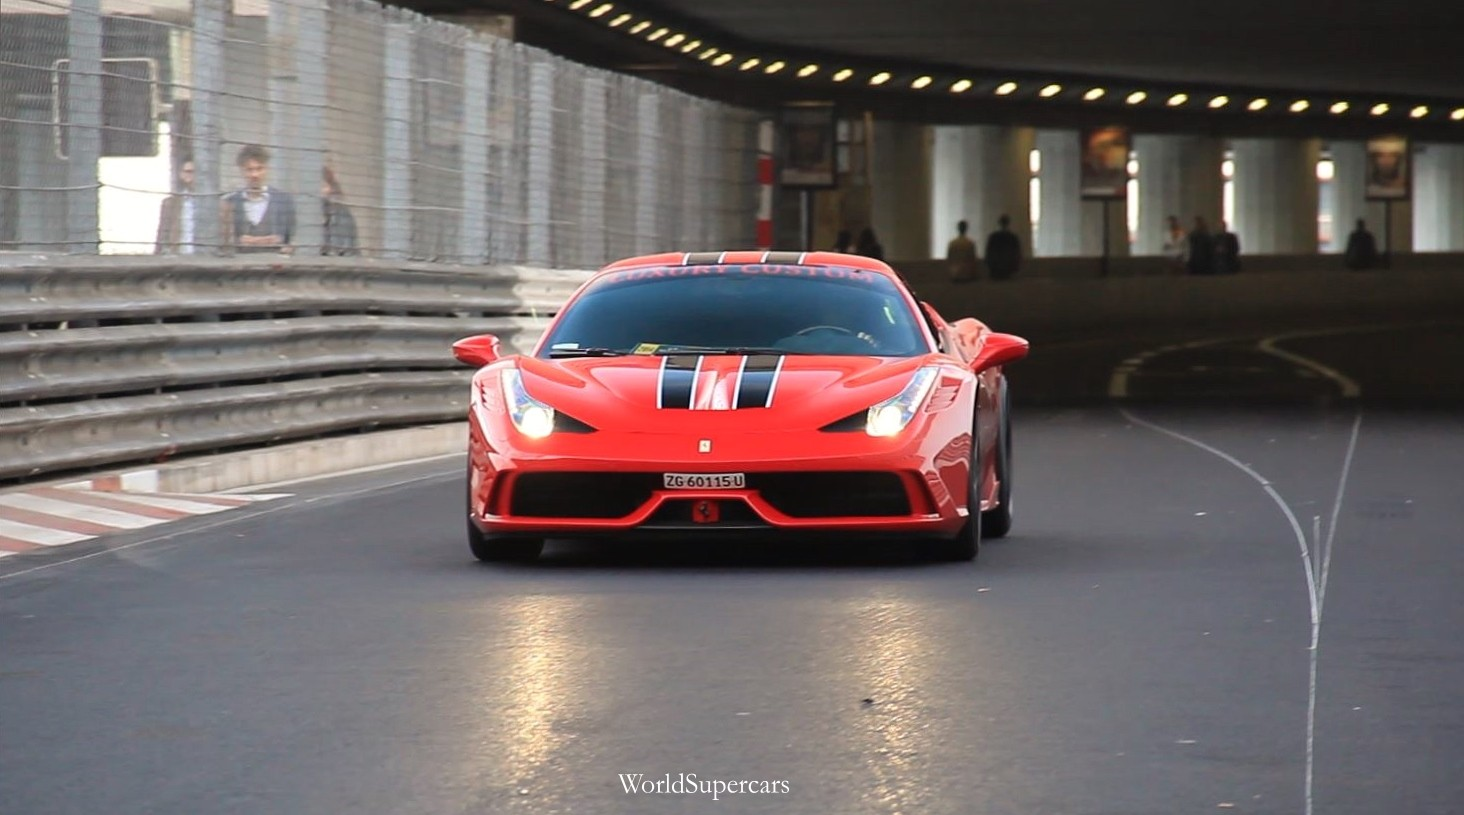 Video: Super Loud Ferrari 458 Speciale with Capristo Exhaust - GTspirit